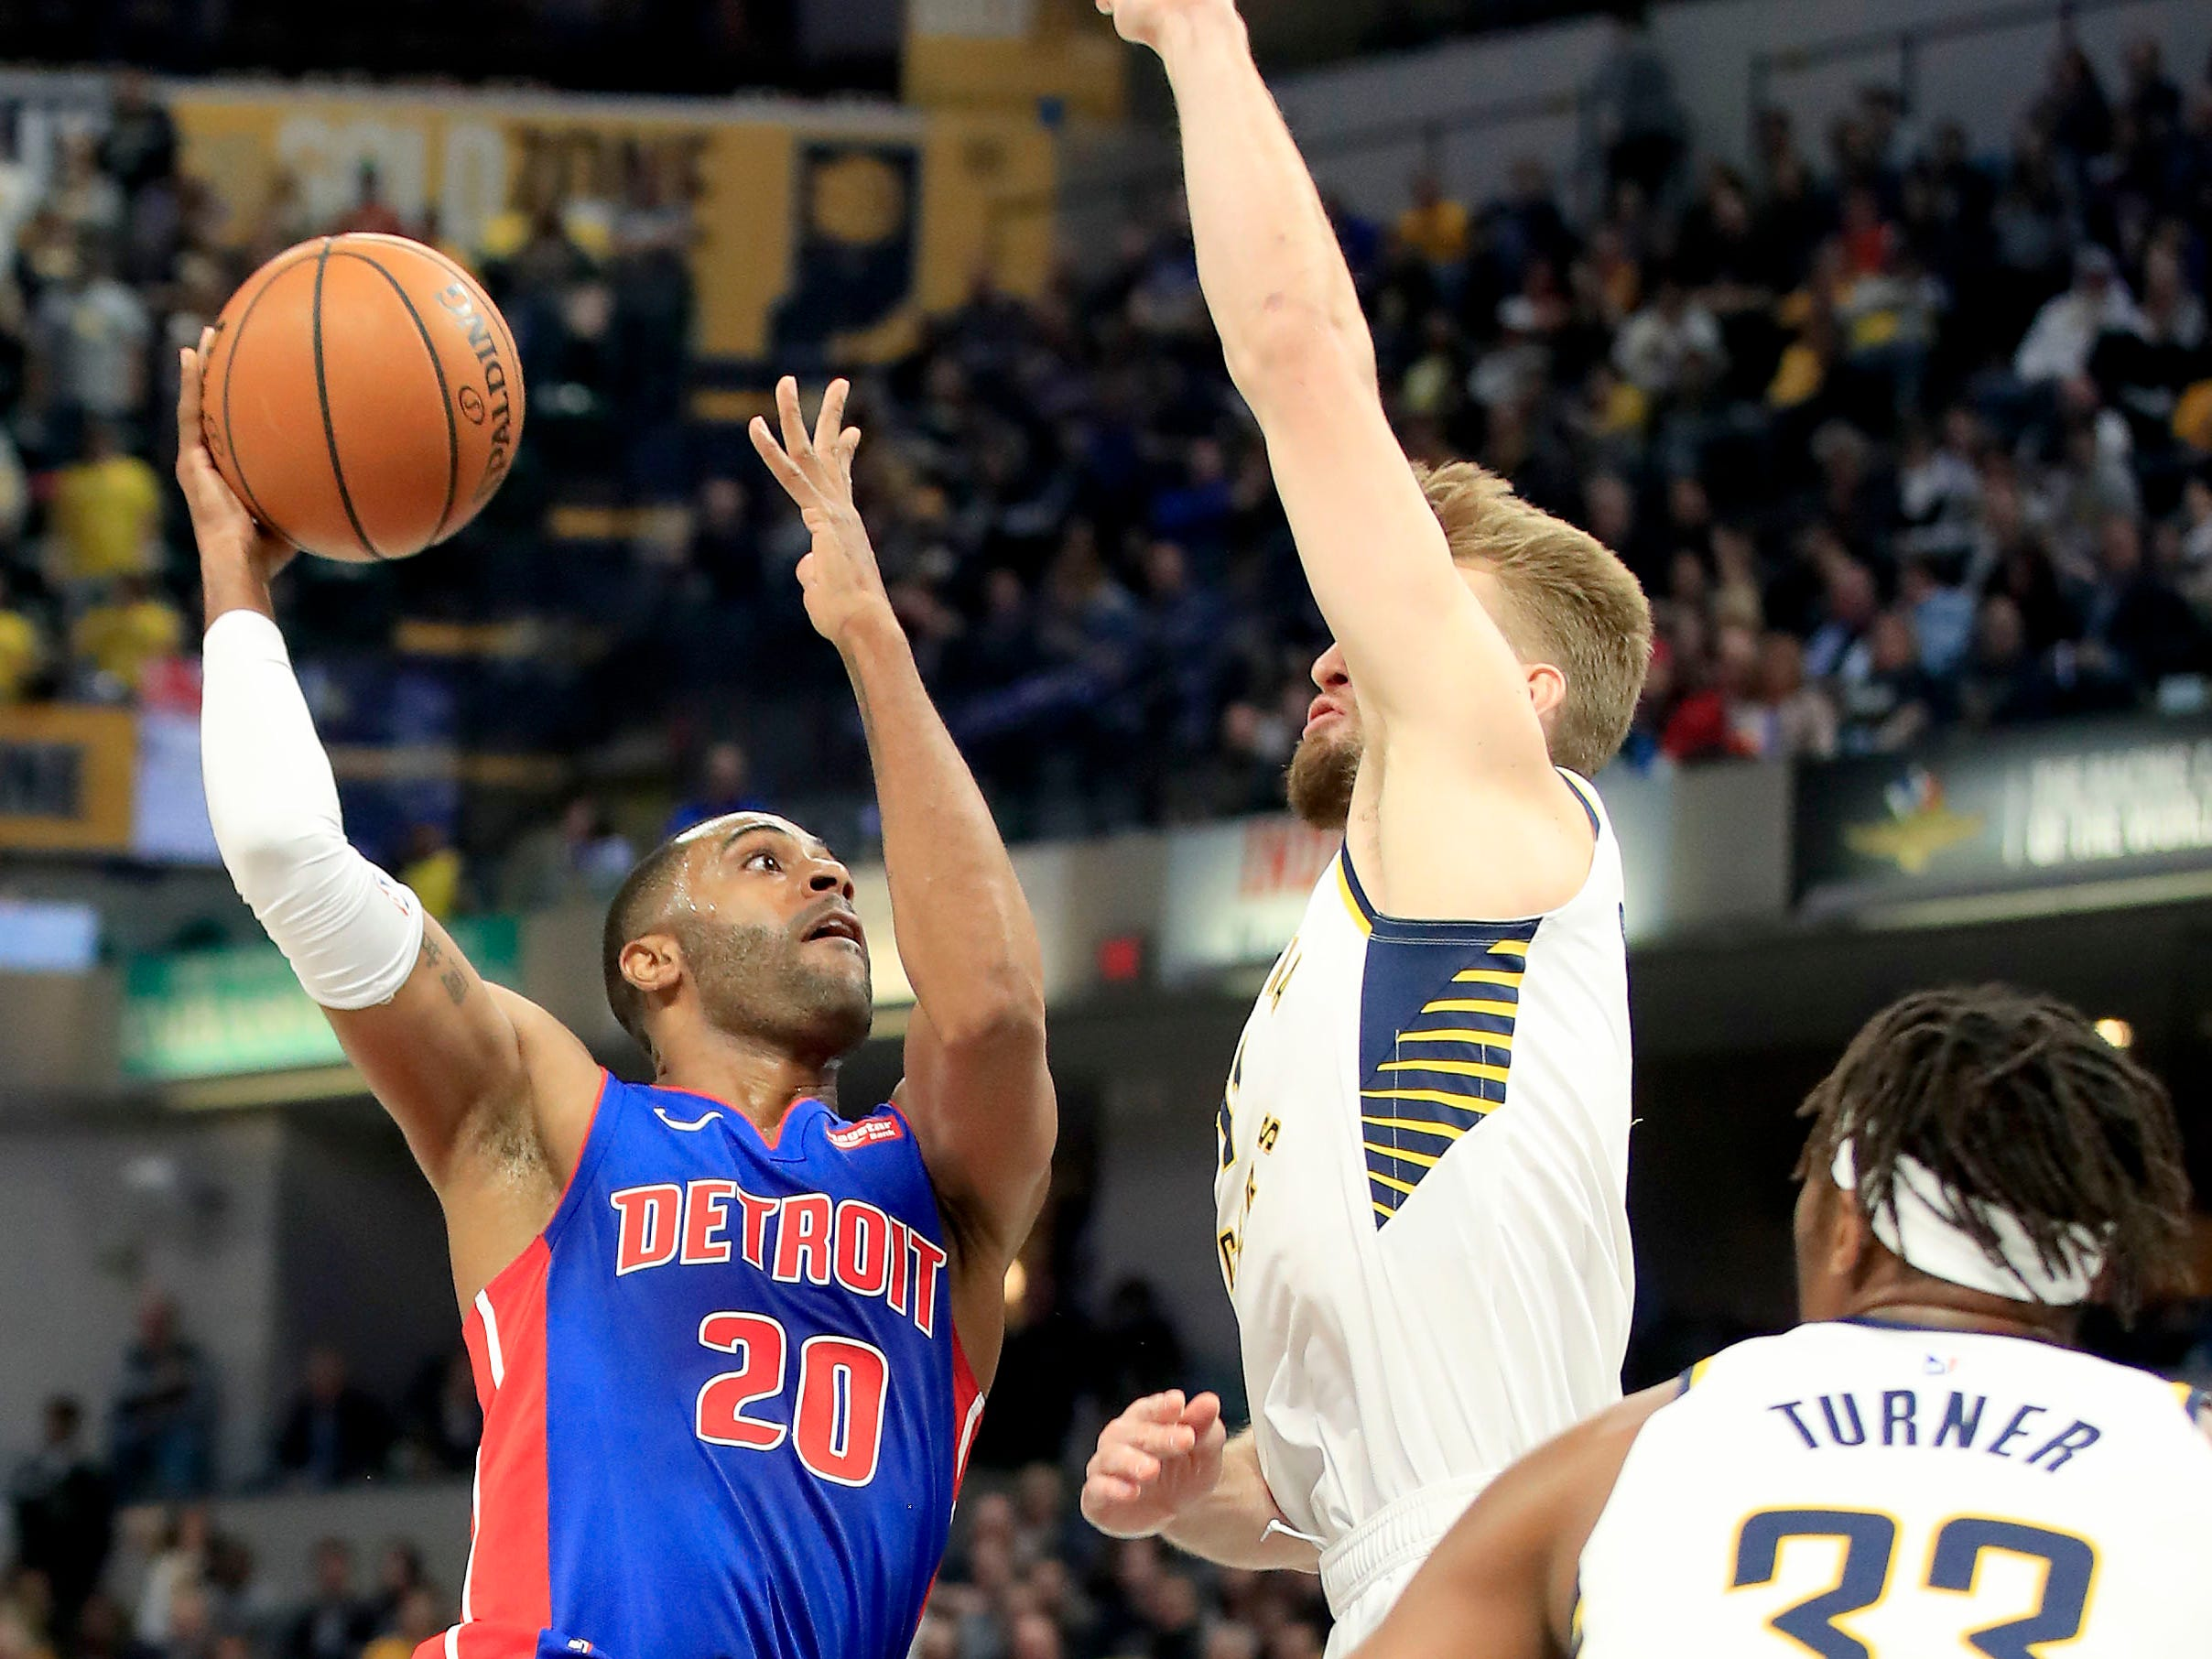 Detroit Pistons' Wayne Ellington shoots against Indiana Pacers' Domantas Sabonis at Bankers Life Fieldhouse on April 1, 2019 in Indianapolis.